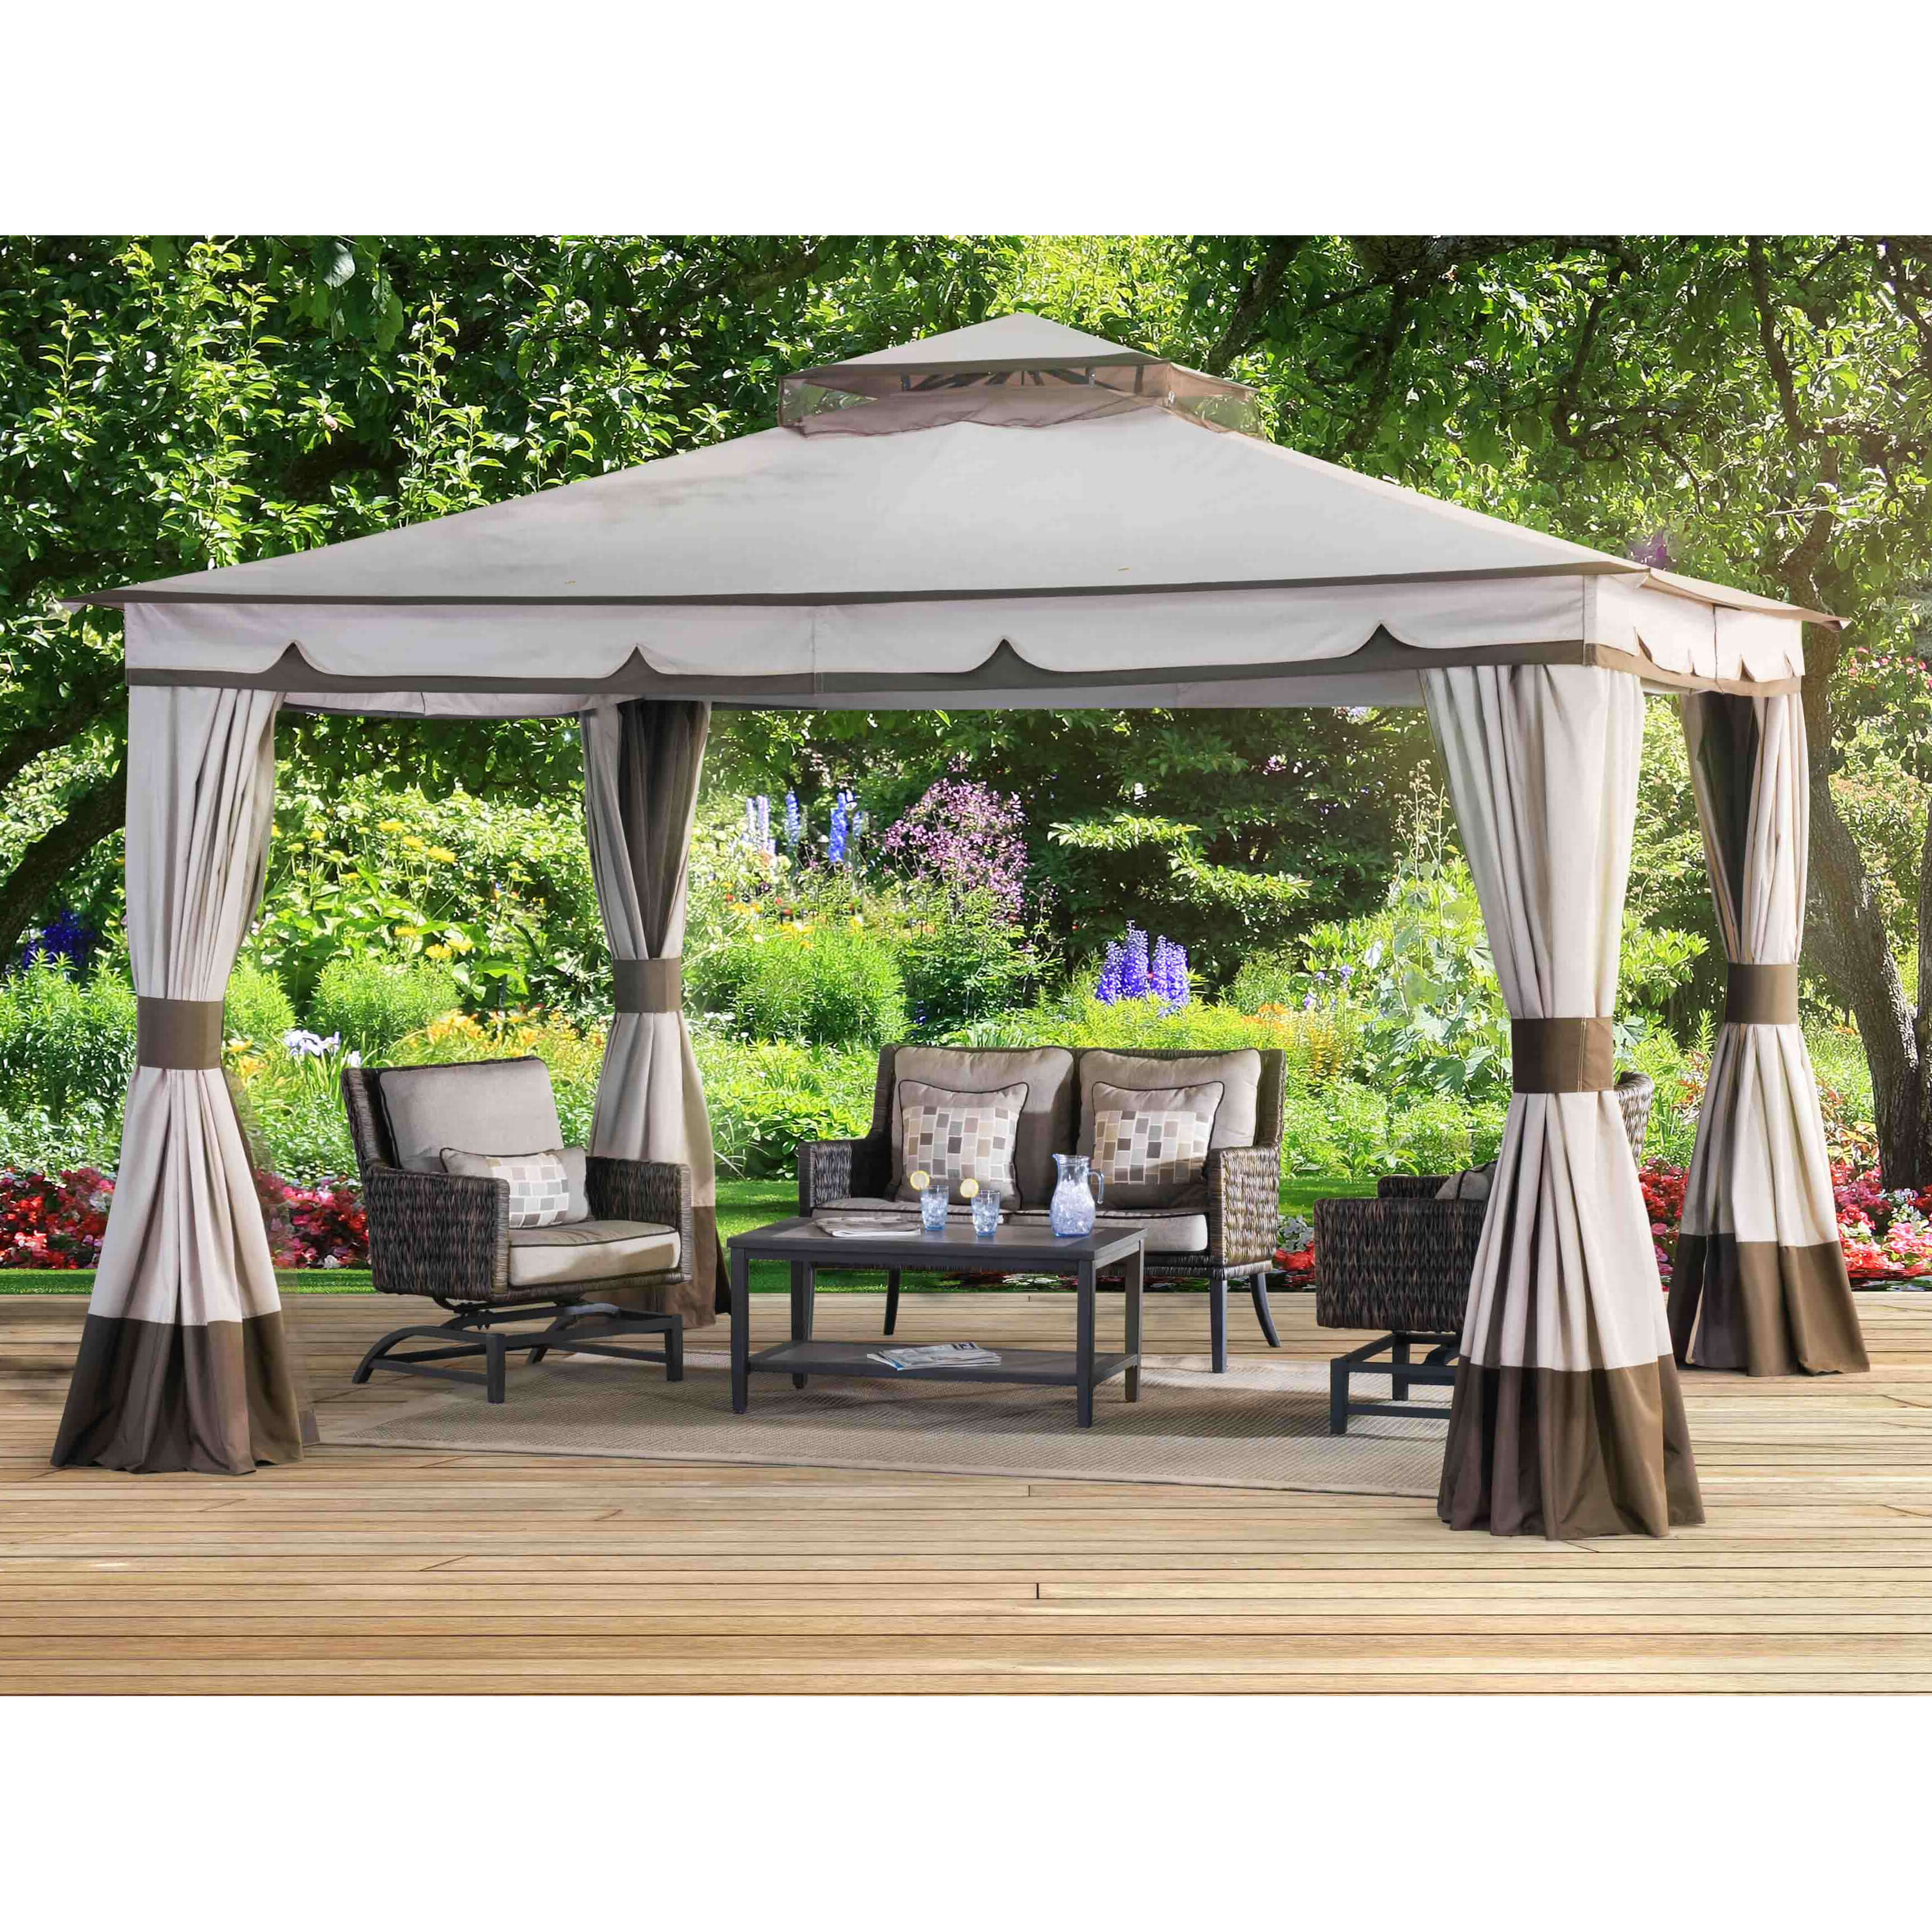 With 120 square feet of floor space beneath its broad canopy, this gazebo has plenty of room for activities, dining, or relaxing. The wraparound curtains can be drawn back for a fully opened look.